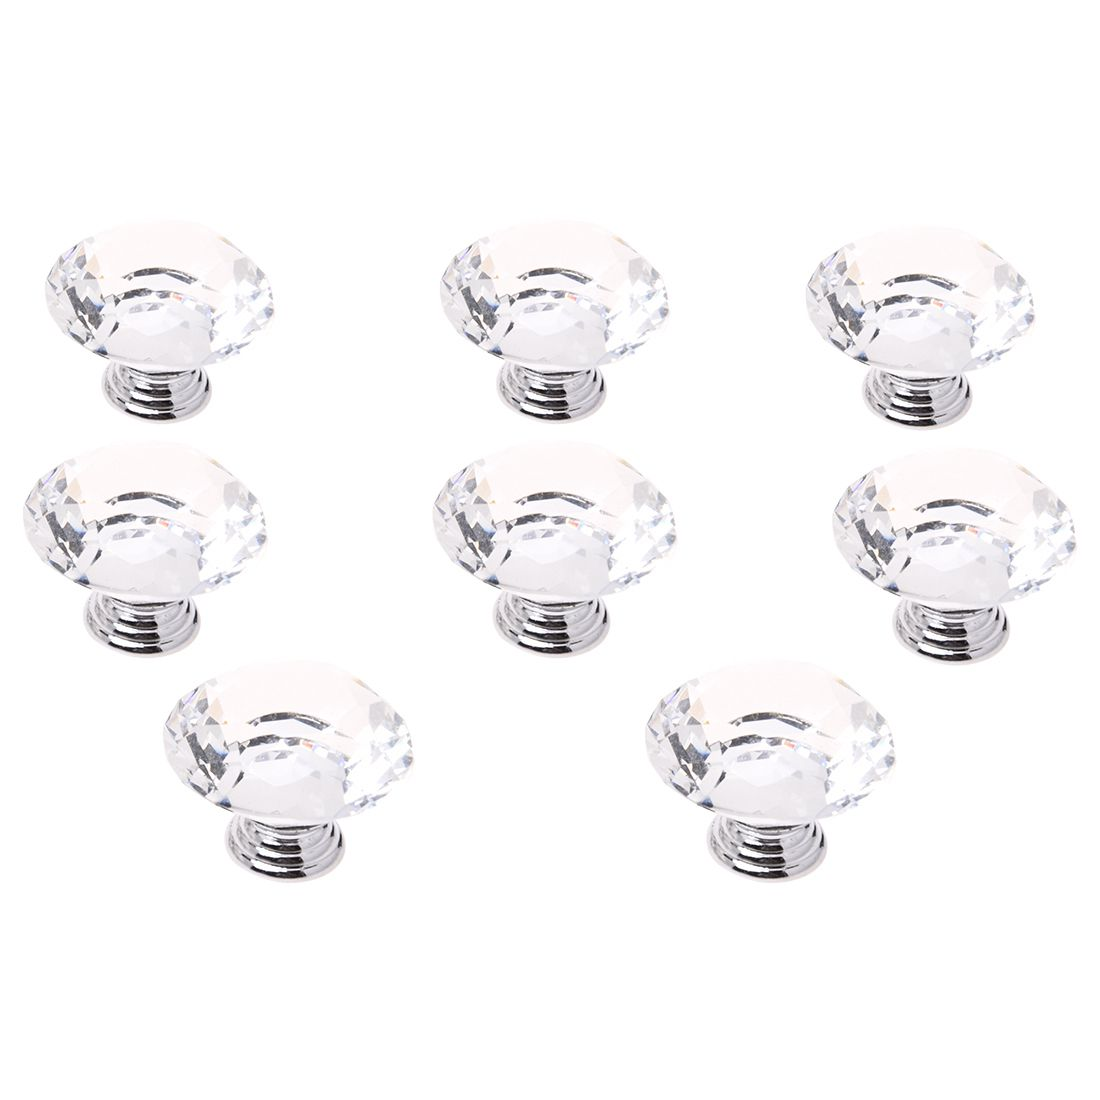 EWS-50MM 8 pcs Knob Crystal for wall cabinet drawer wardrobe cabinets kitchen furniture Damage brightness to any mobile, TransEWS-50MM 8 pcs Knob Crystal for wall cabinet drawer wardrobe cabinets kitchen furniture Damage brightness to any mobile, Trans